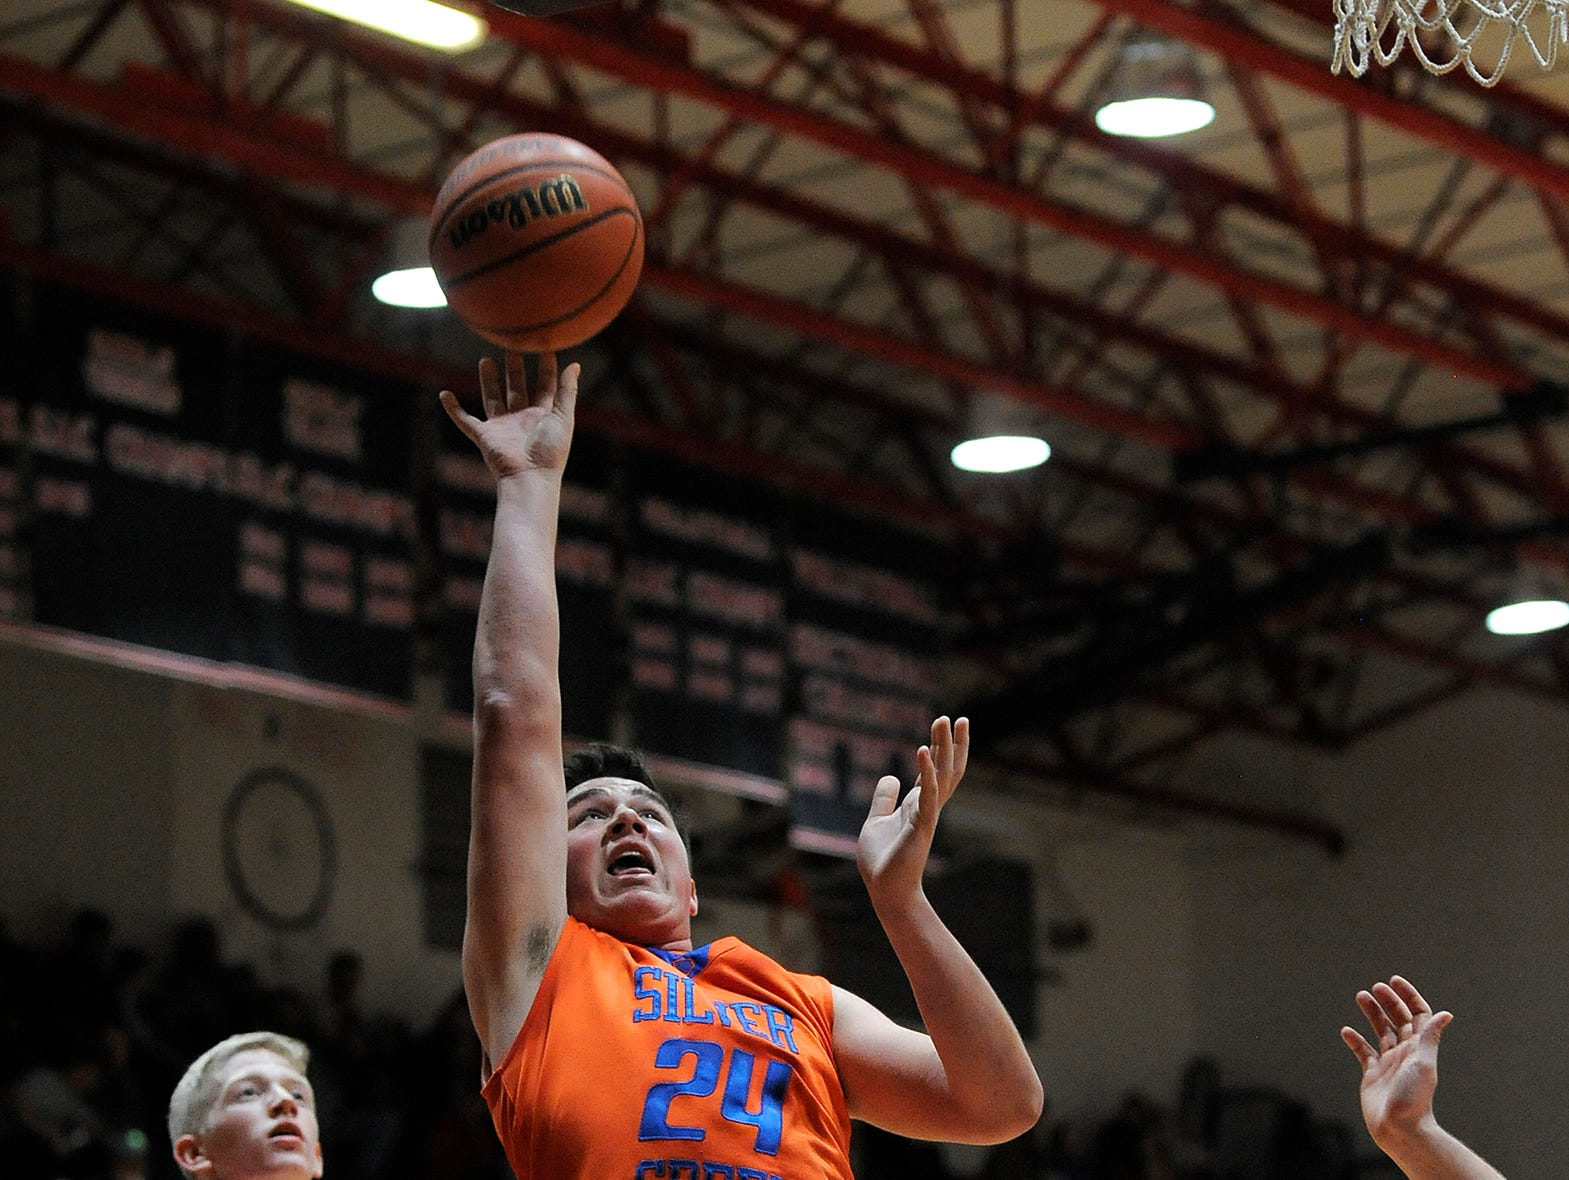 Silver Creek's Josh Landers (24) shoots against Borden's Noah Franklin (24) on Saturday at Borden High School. (Photo by David Lee Hartlage, Special to The Courier-Journal) Jan. 7, 2017